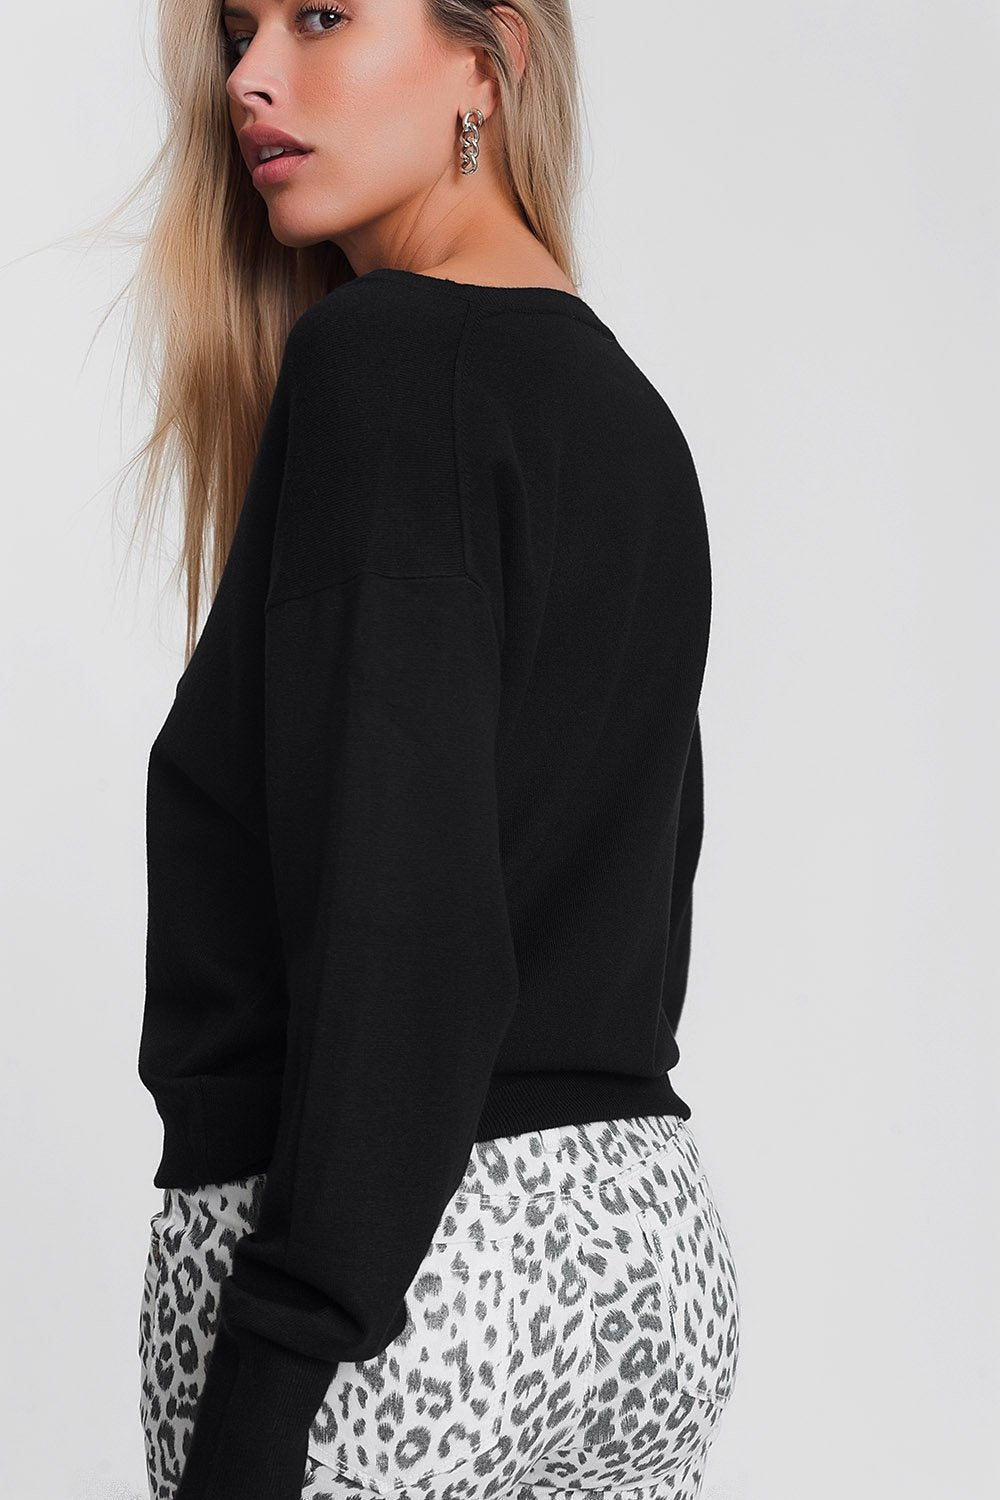 V Neck Light Weight Knit JumperSweater Top  in Black